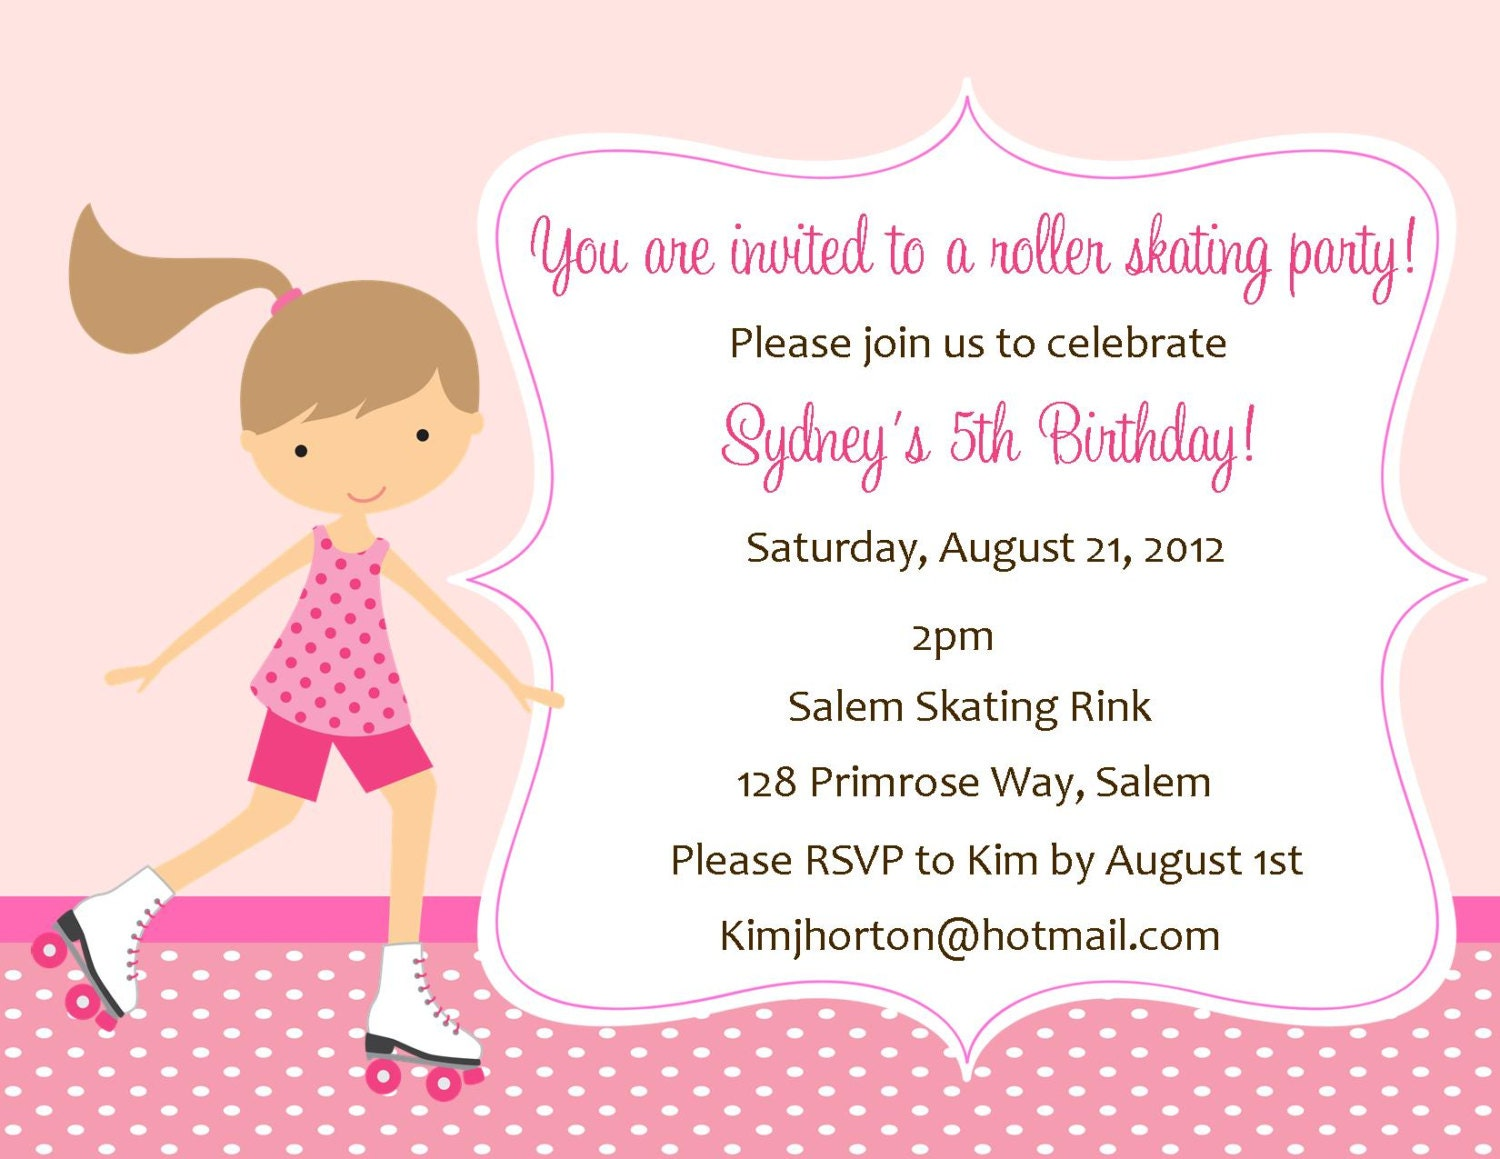 Birthday invitations sydney gallery invitation templates free download birthday invitations sydney choice image invitation templates free birthday invitations sydney images invitation templates free download filmwisefo